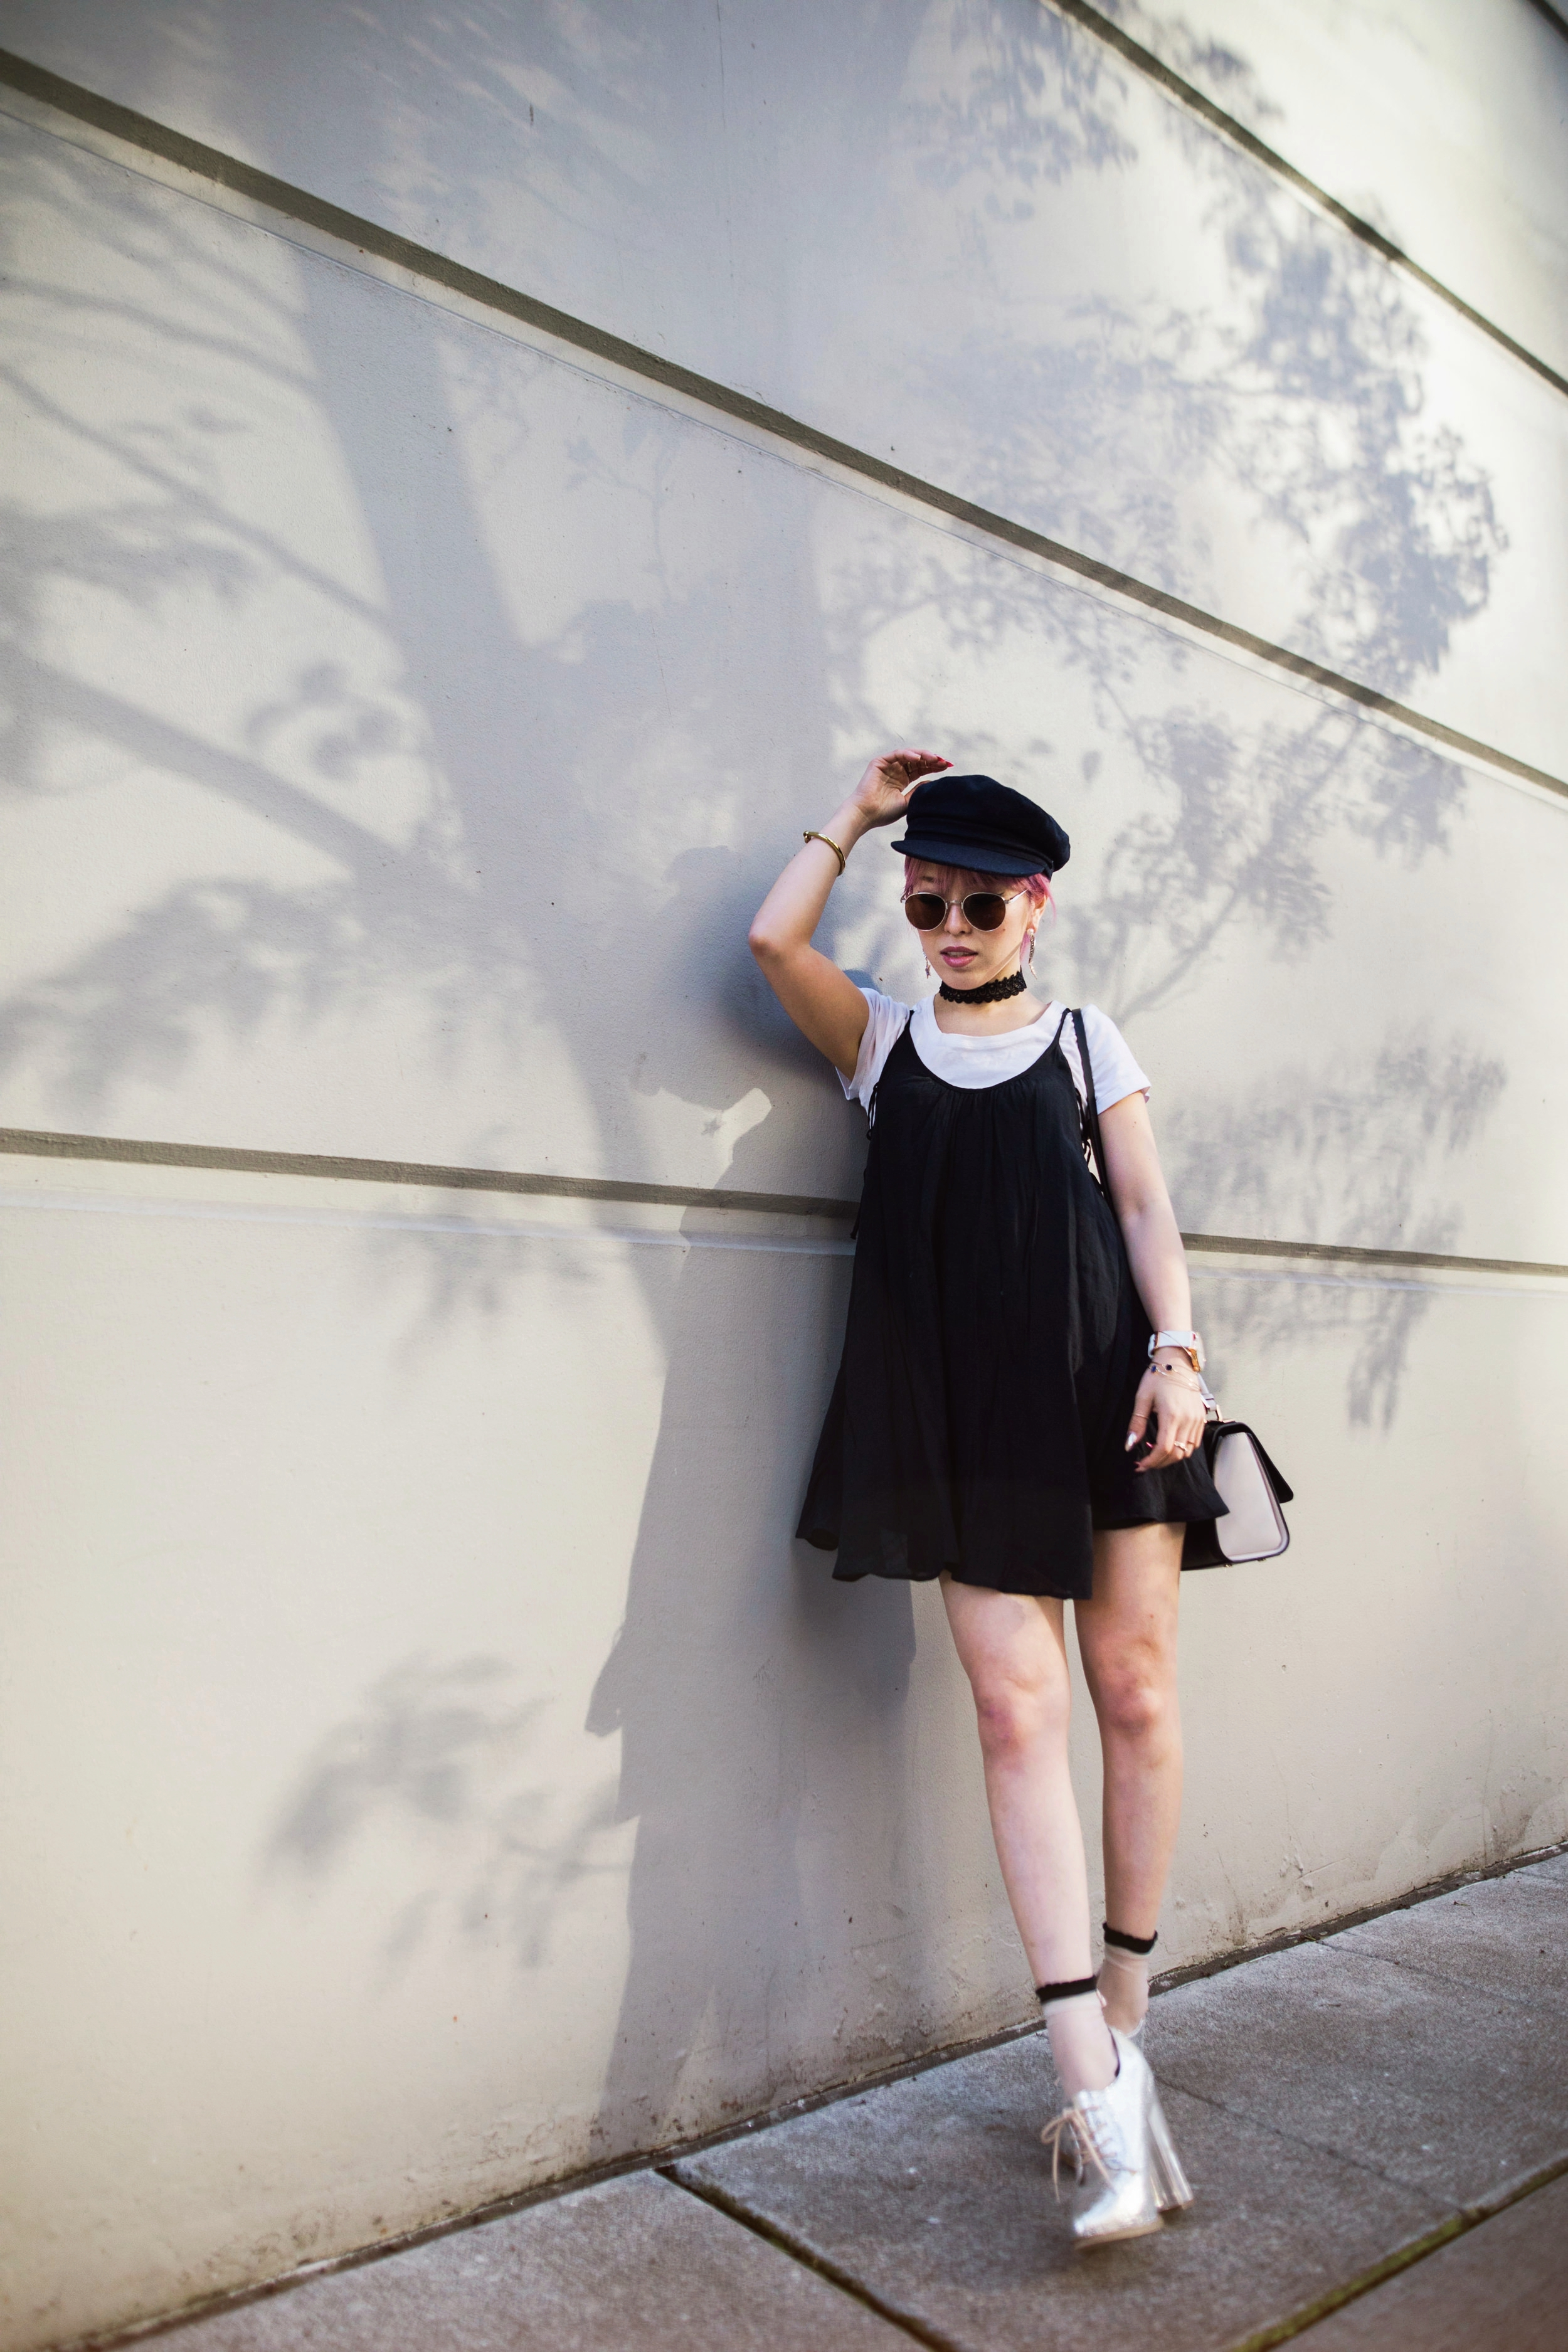 Aritzia News Boy Cap_Polette Retro Round Sunglasses_Mango Moon Star Earrings_Shopdixi Lace Choker_Forever 21 White Tee_Urban Outfitters Little Black Dress_Zara Bag_Sheer ankle Socks_ASOS Glitter Block heels Shoes_Aikas Love Closet_Seattle Fashion Blogger_Japanese_Pink hair 15